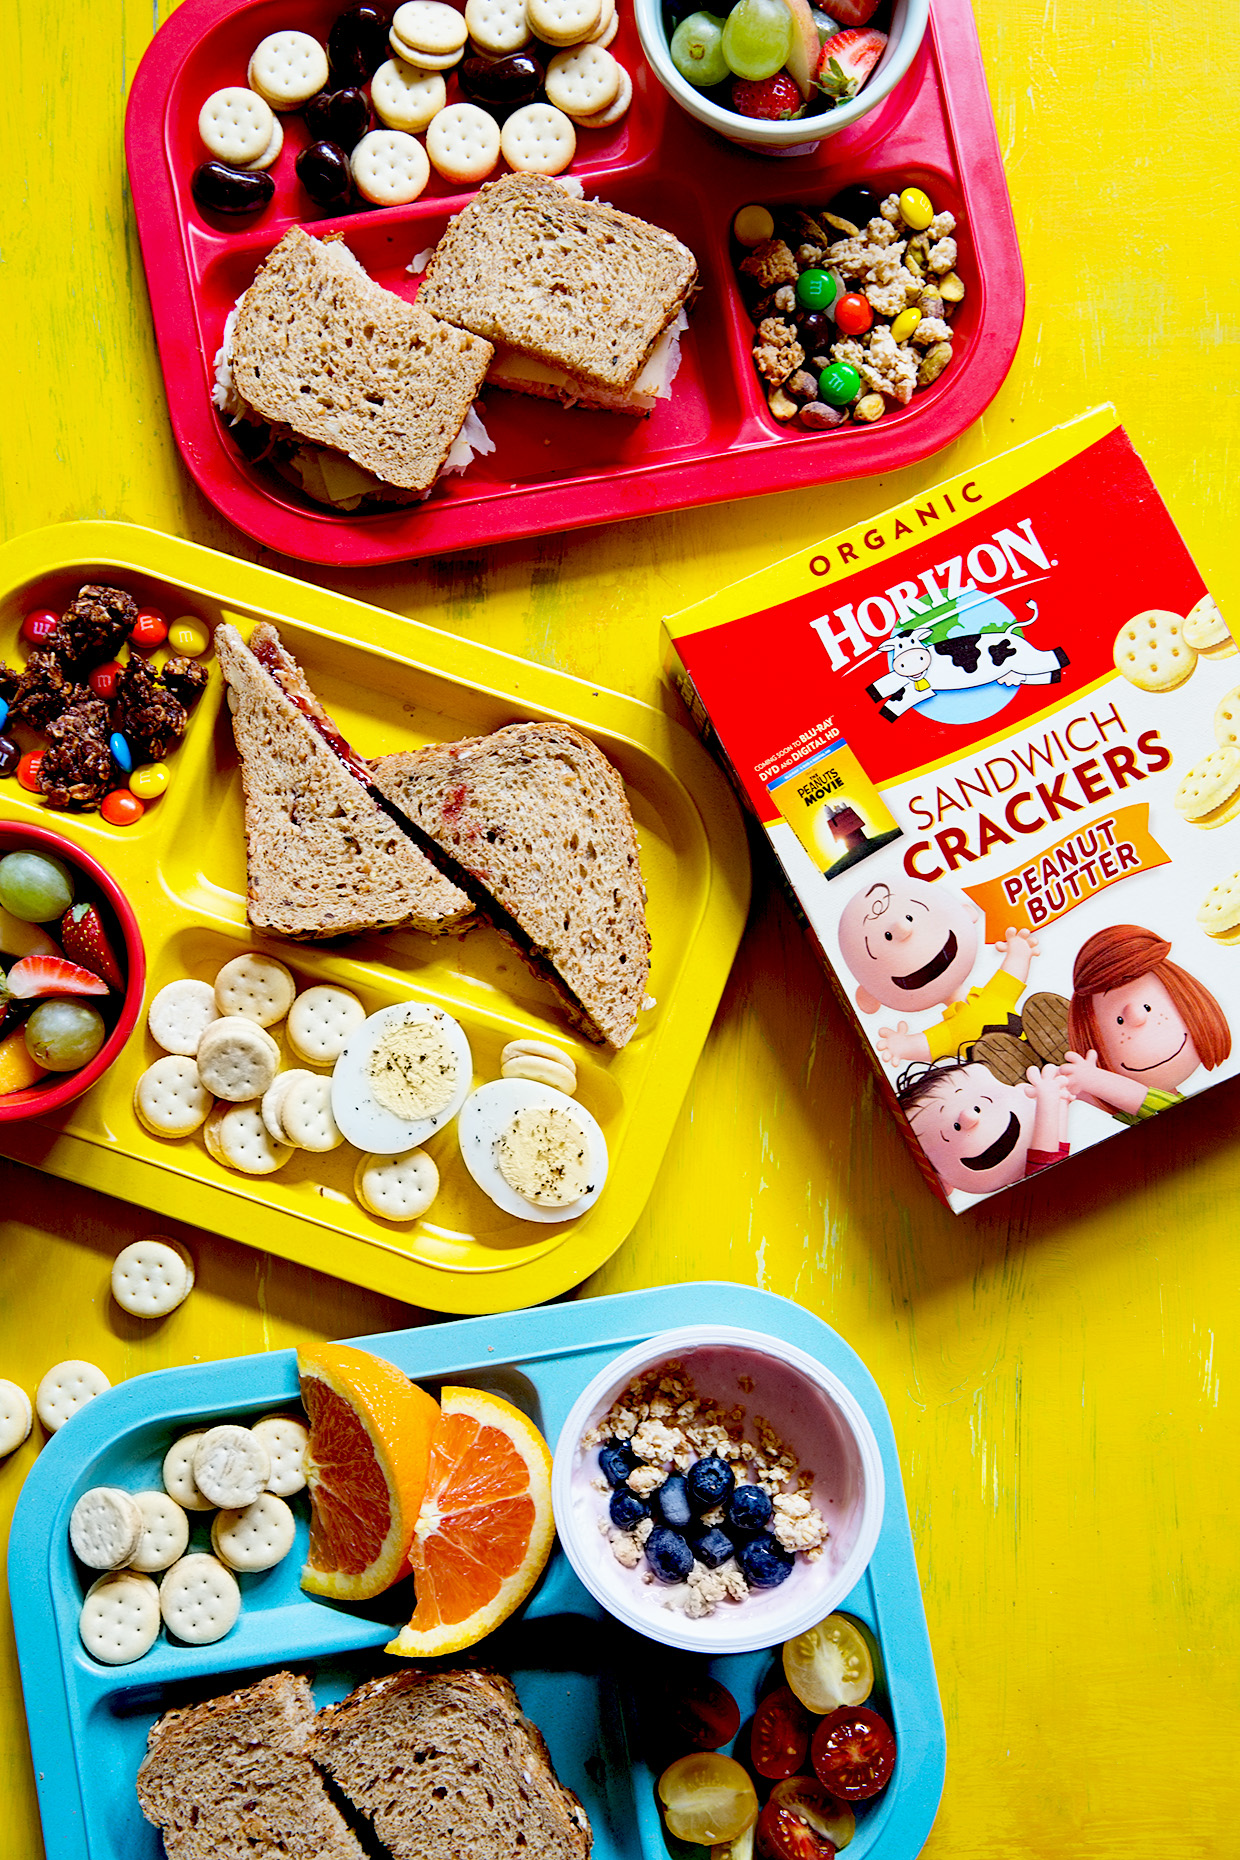 After School Snacks 2016 via Real Food by Dad